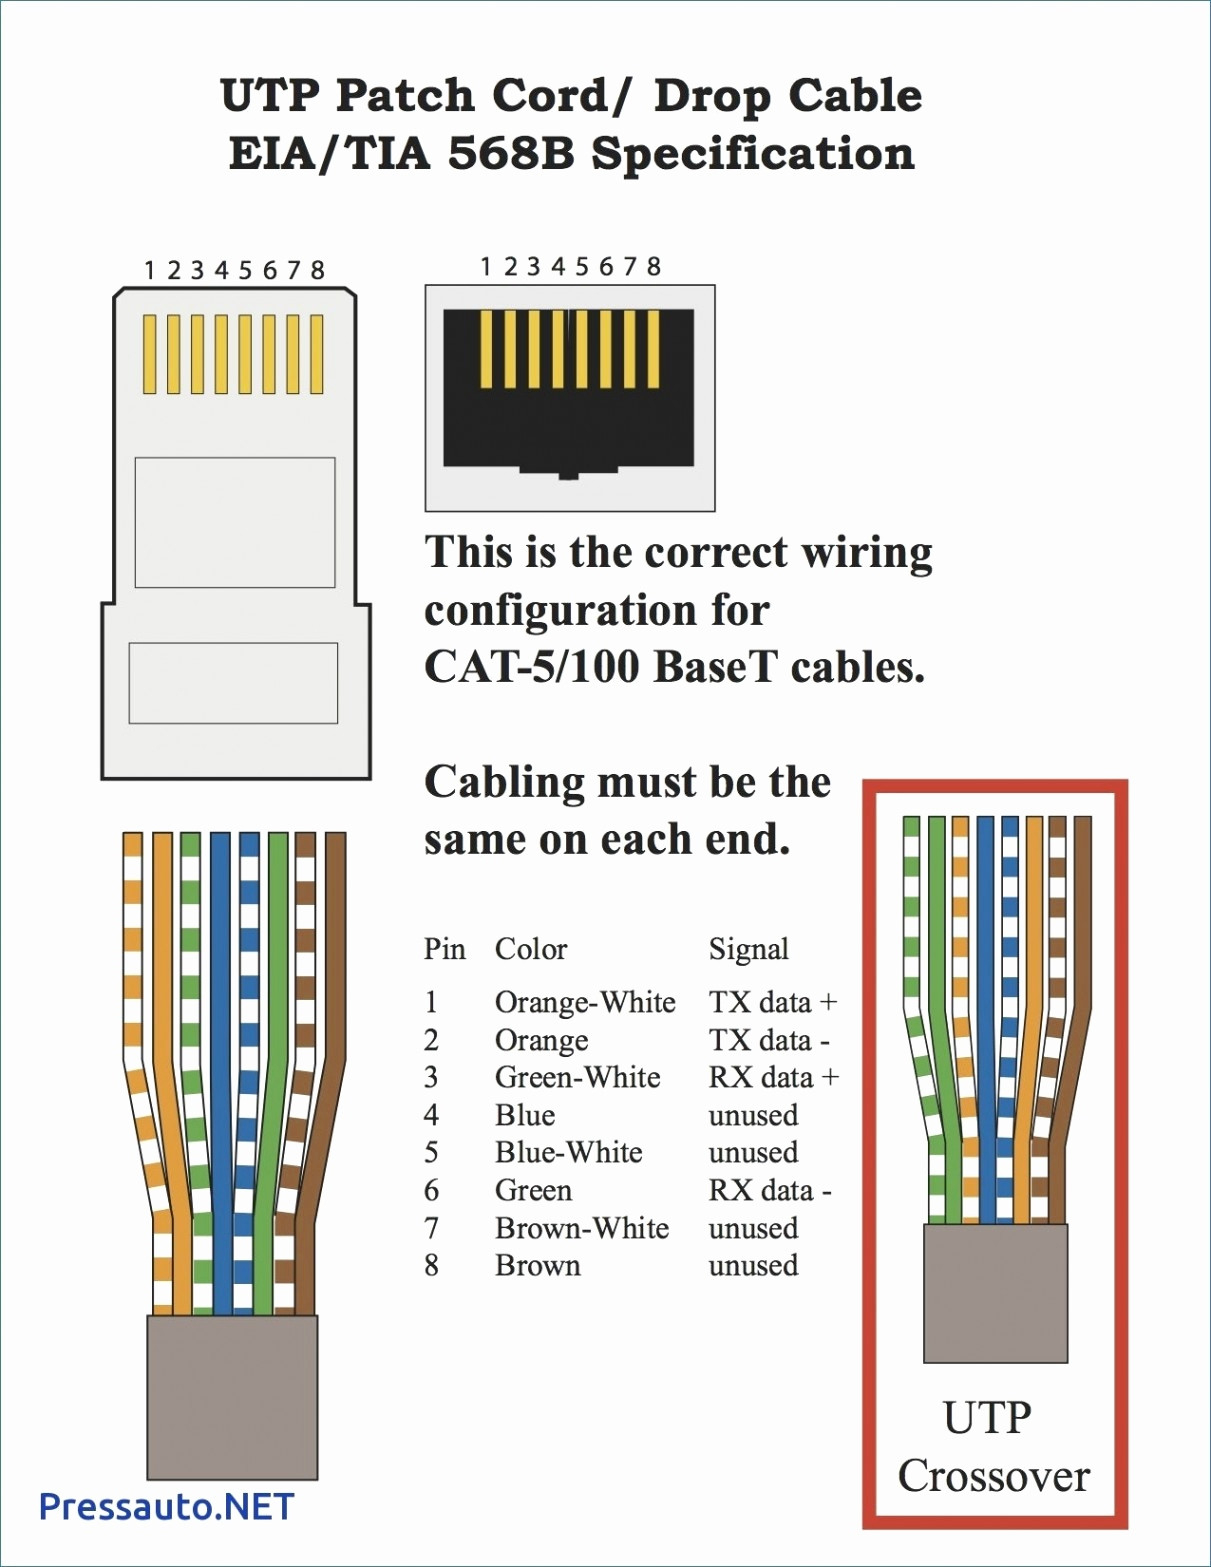 Usb To Cat 5 Wiring Diagram B | Wiring Diagram - Wiring Diagram Cat5 To Usb